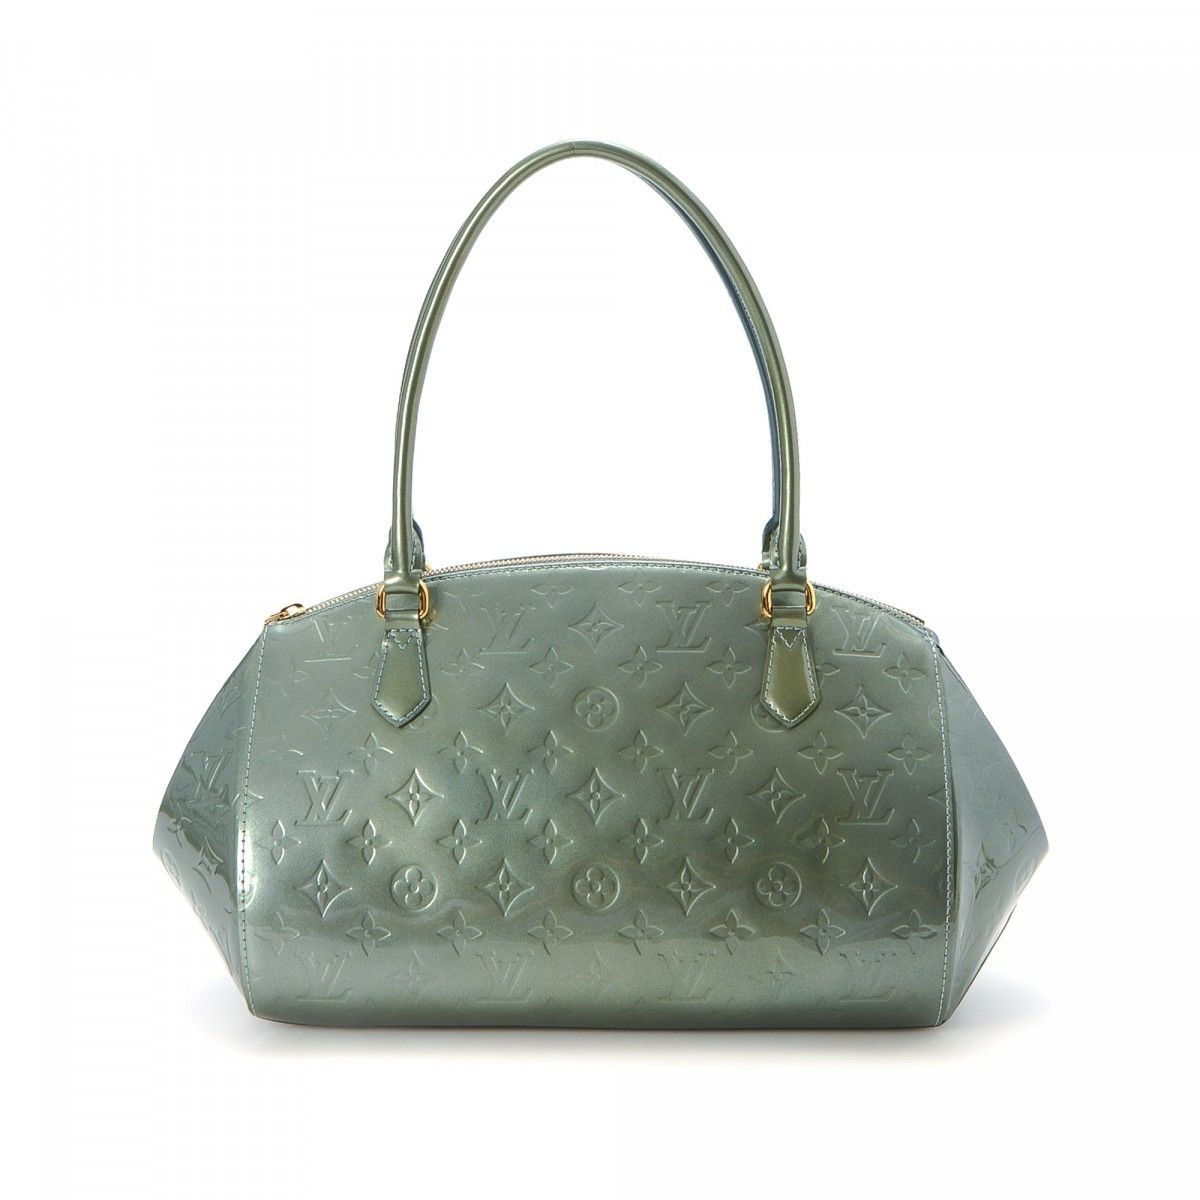 Louis Vuitton Pre-owned - Patent leather handbag z6GLRHlLQ